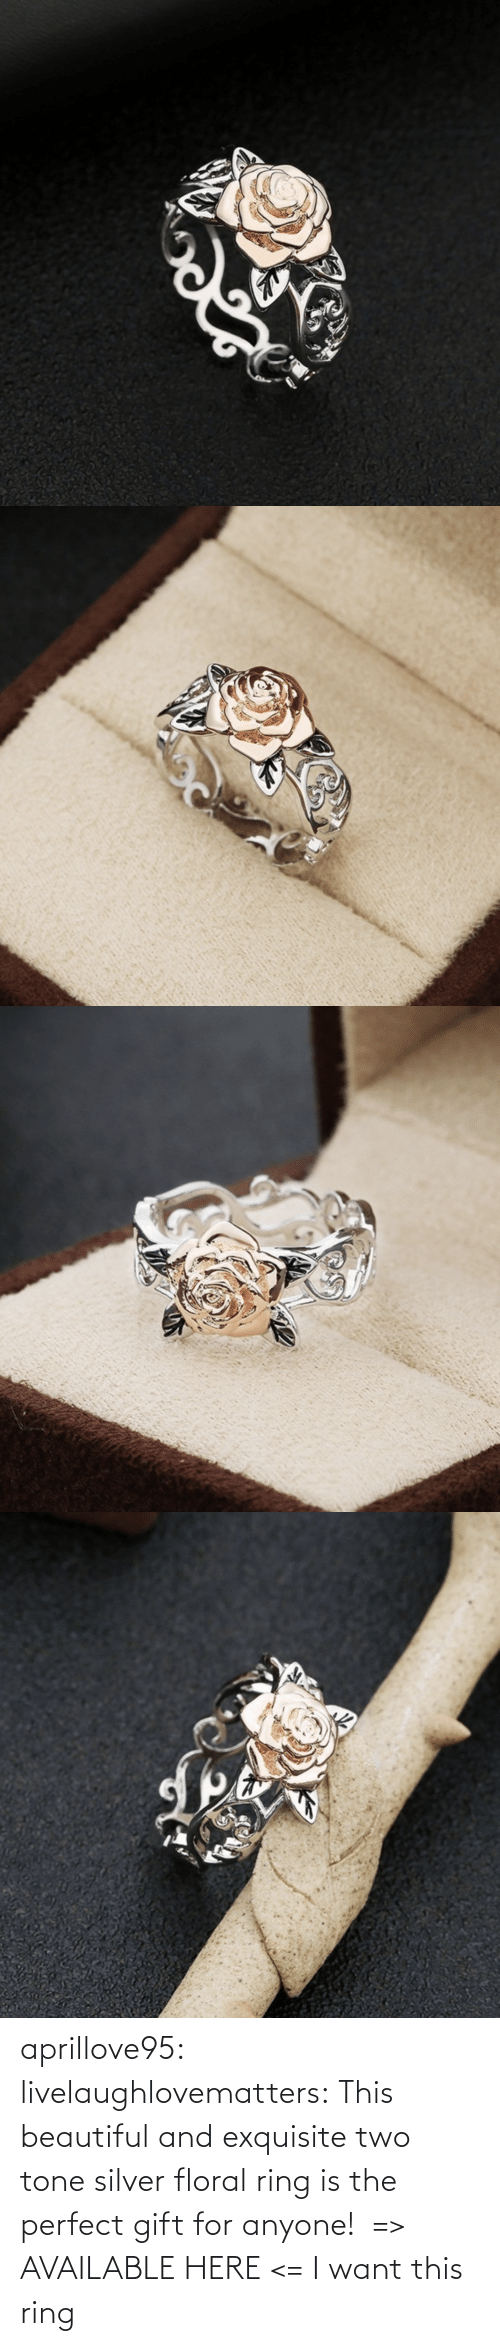 tone: aprillove95:  livelaughlovematters:  This beautiful and exquisite two tone silver floral ring is the perfect gift for anyone!  => AVAILABLE HERE <=    I want this ring